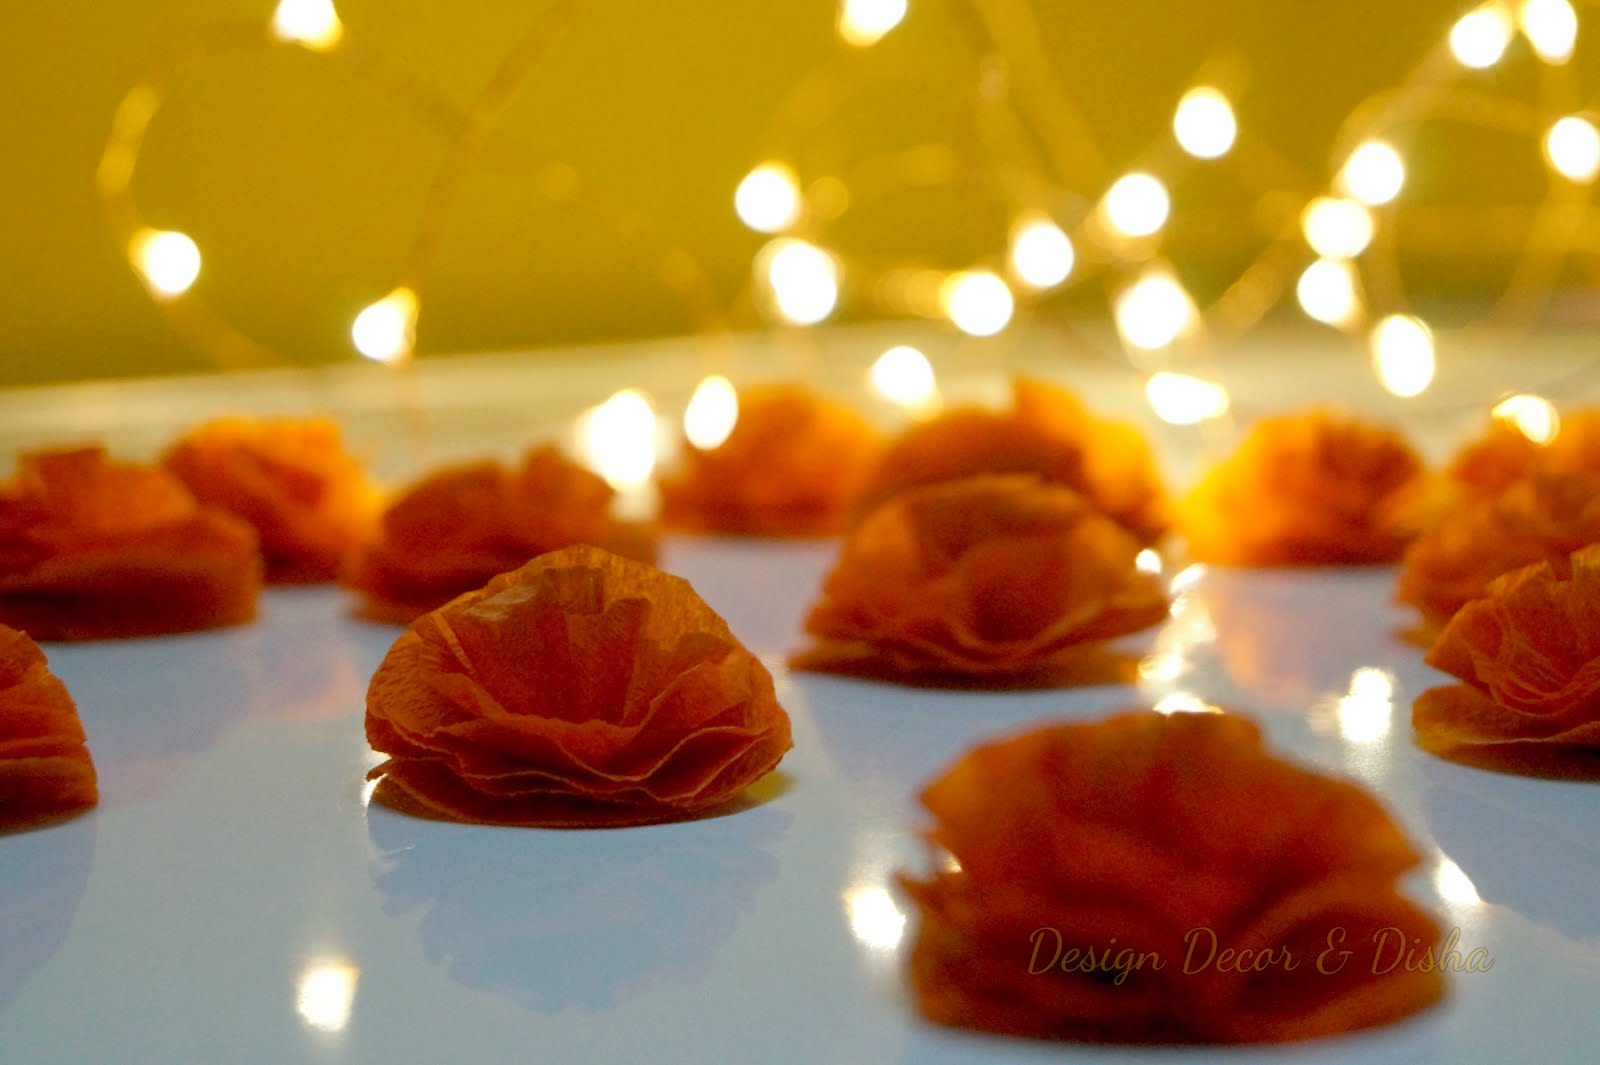 Design Decor Disha An Indian Design Decor Blog Last Minute Diwali Diy Home Decor Ideas